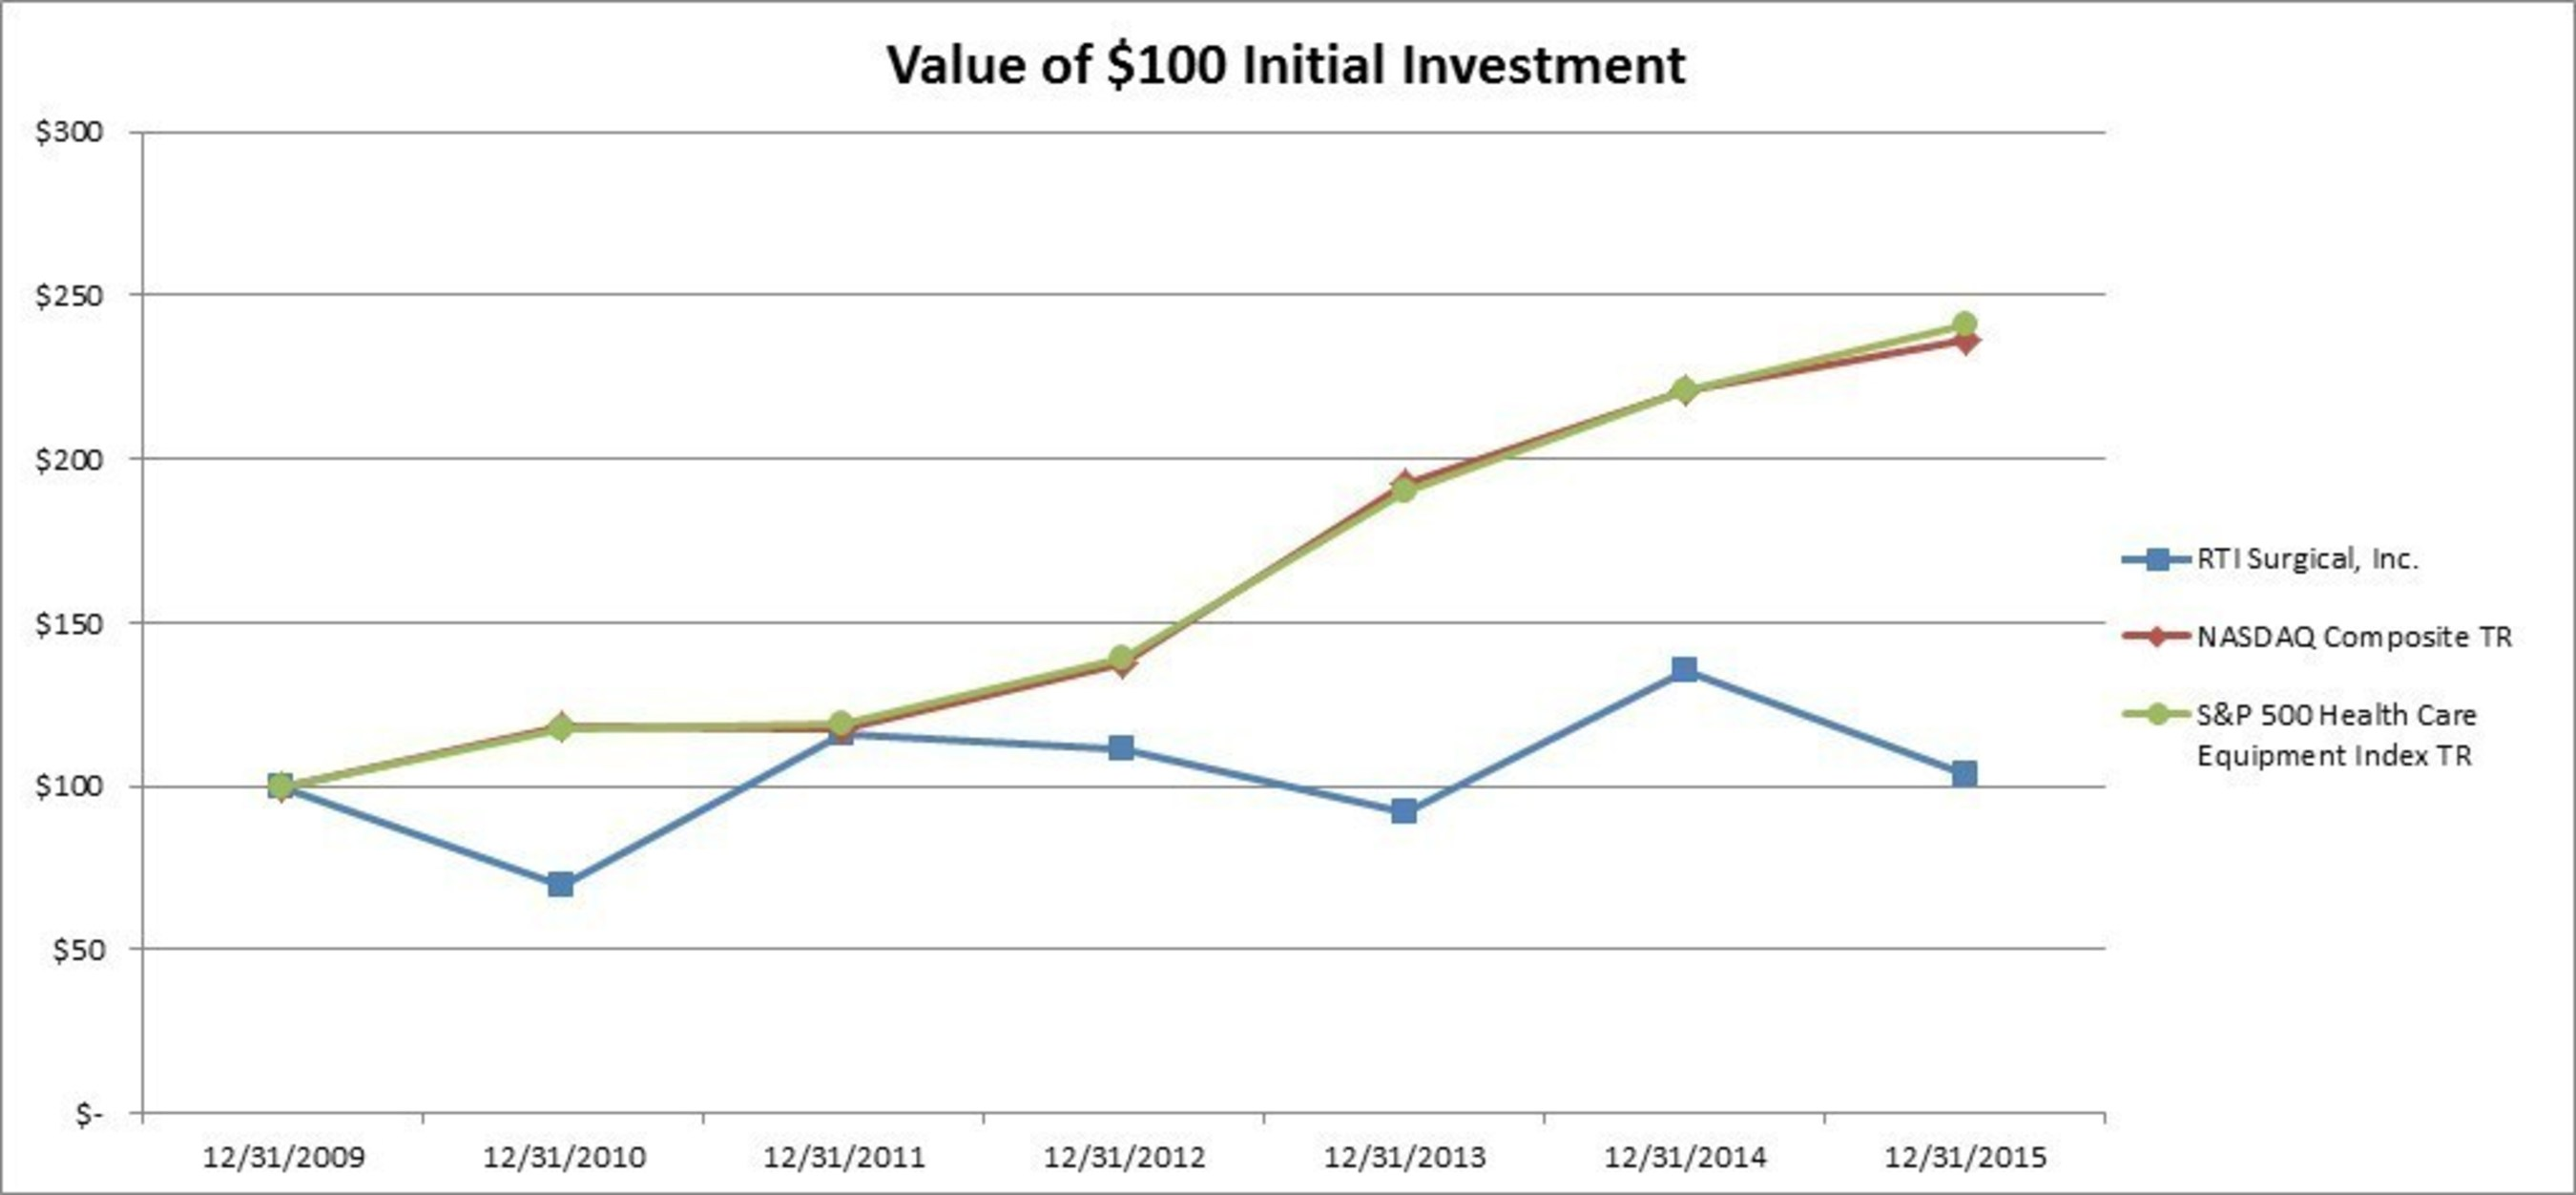 Value of $100 Initial Investment